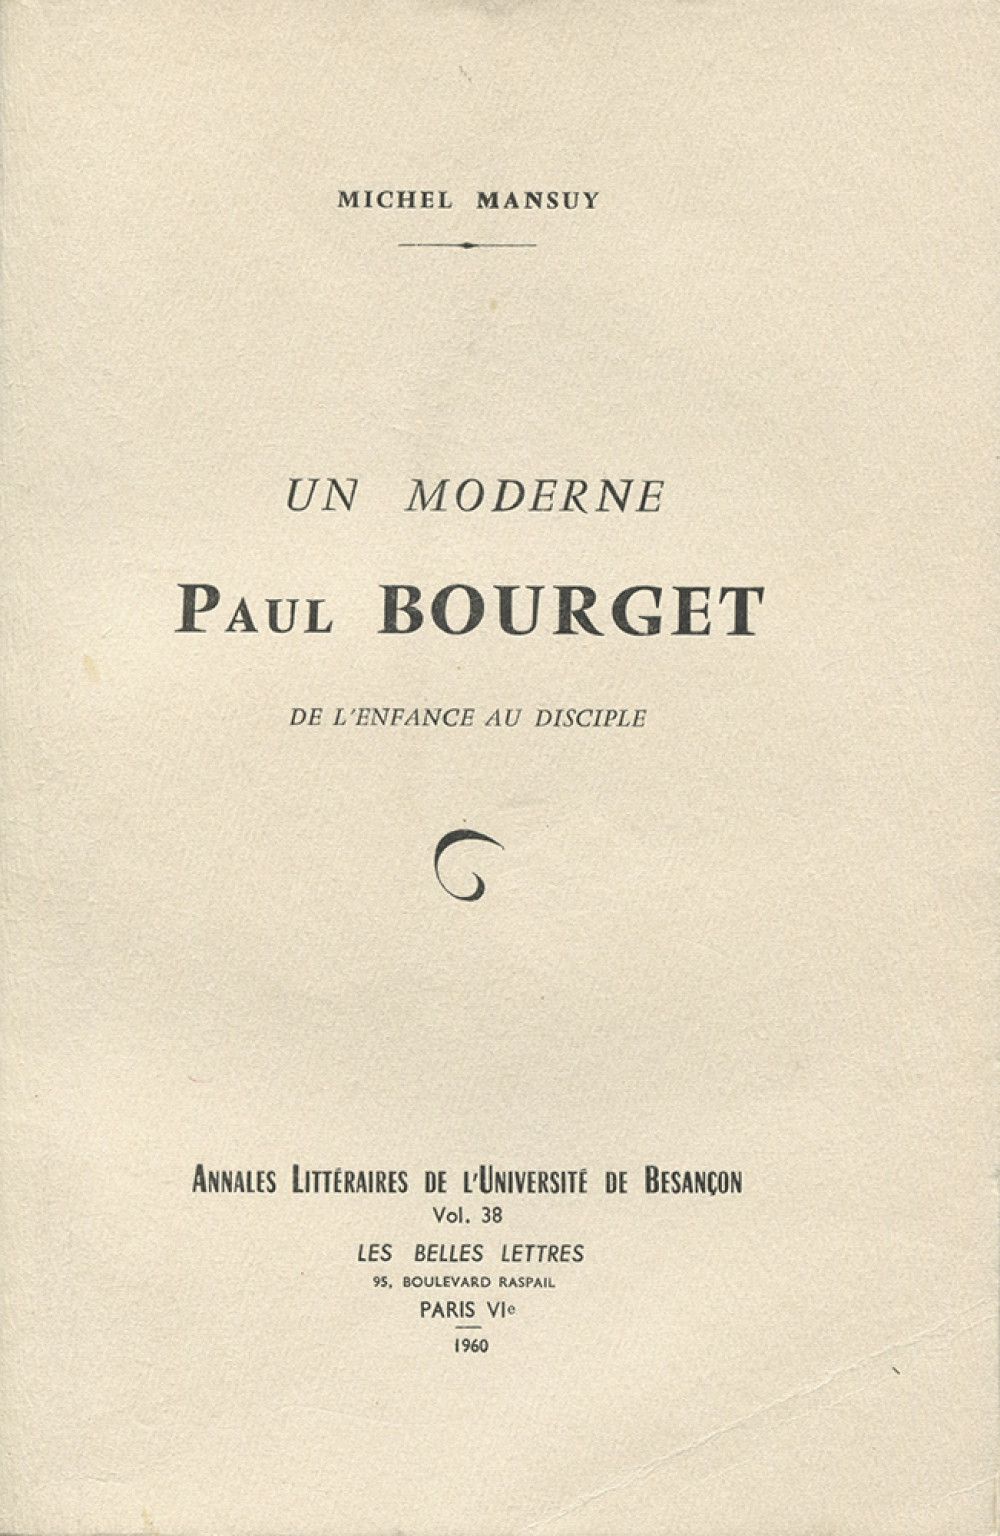 Un moderne Paul Bourget